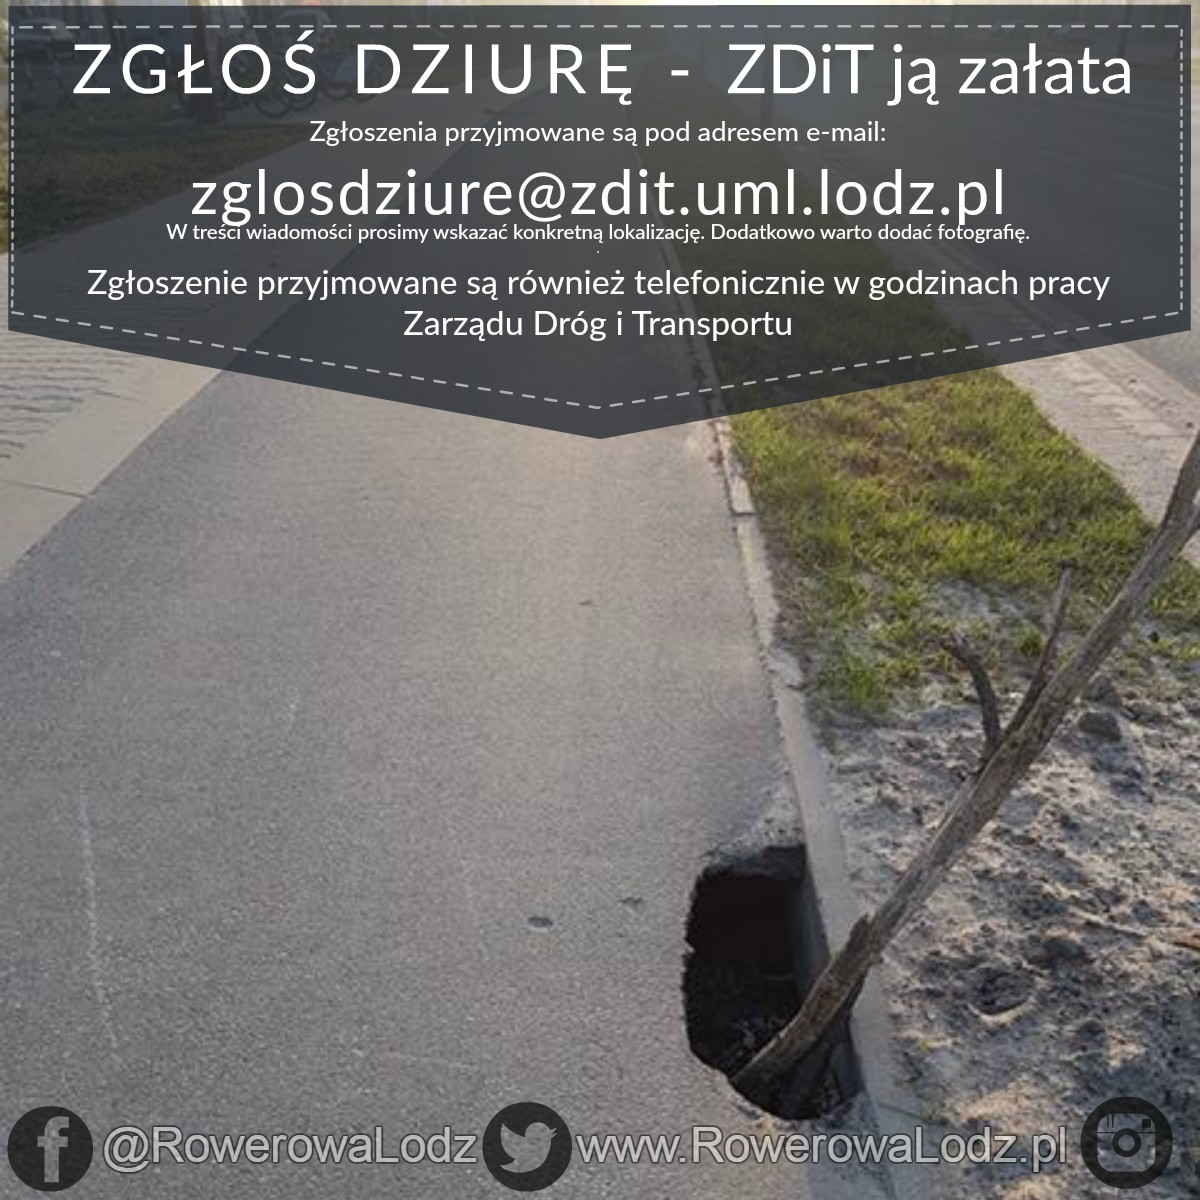 zglos dziure do ZDiT